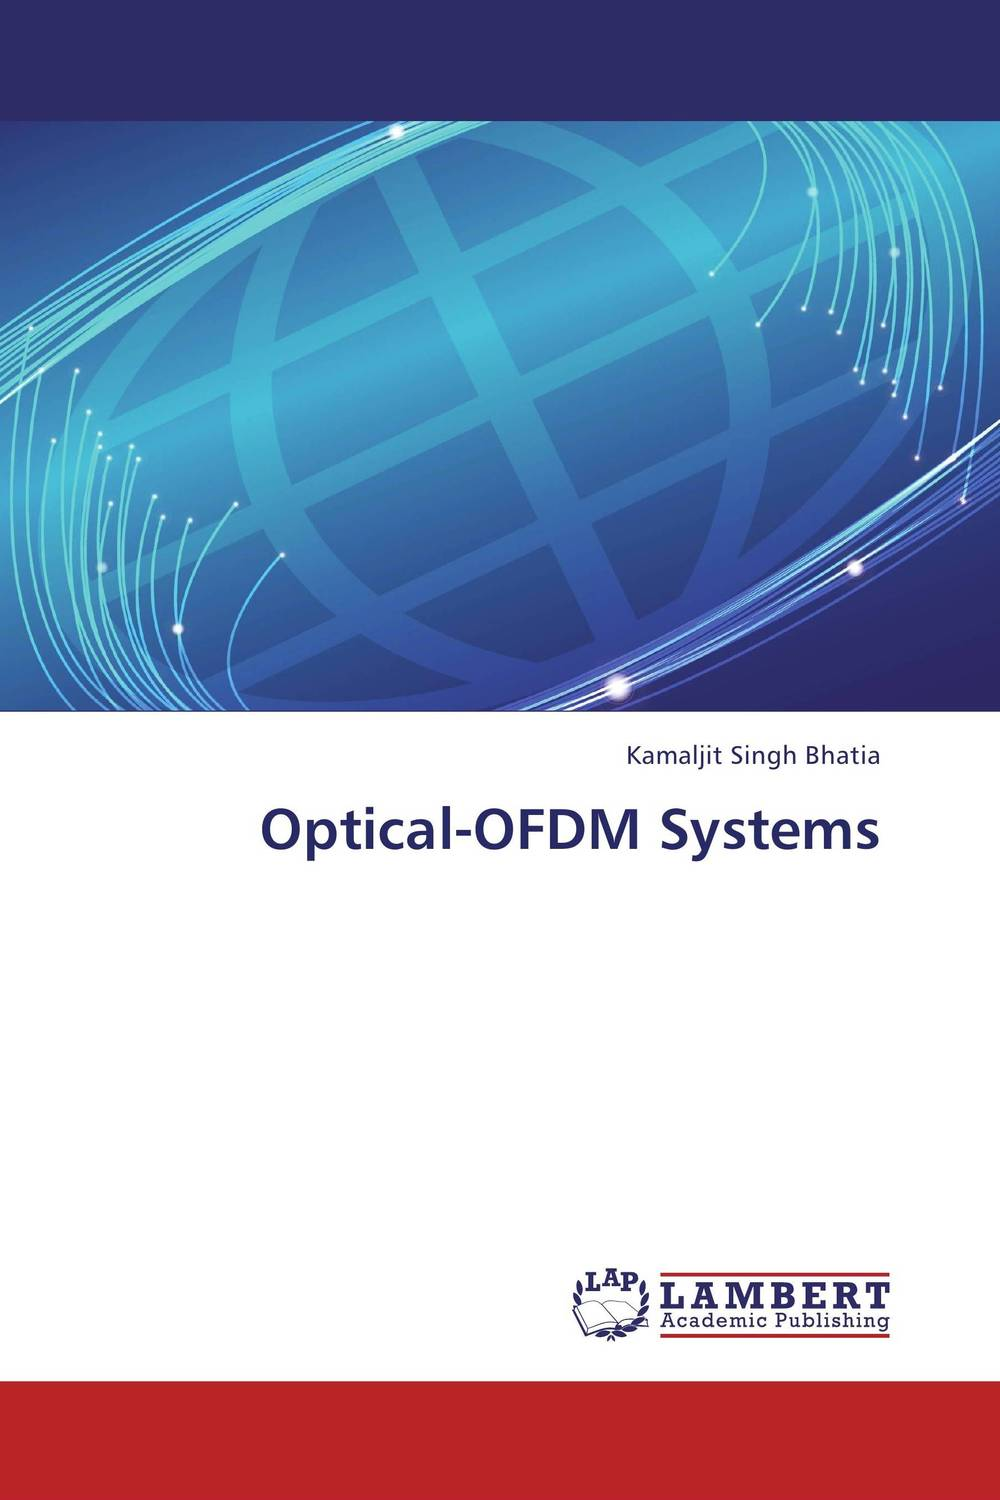 Optical-OFDM Systems купить